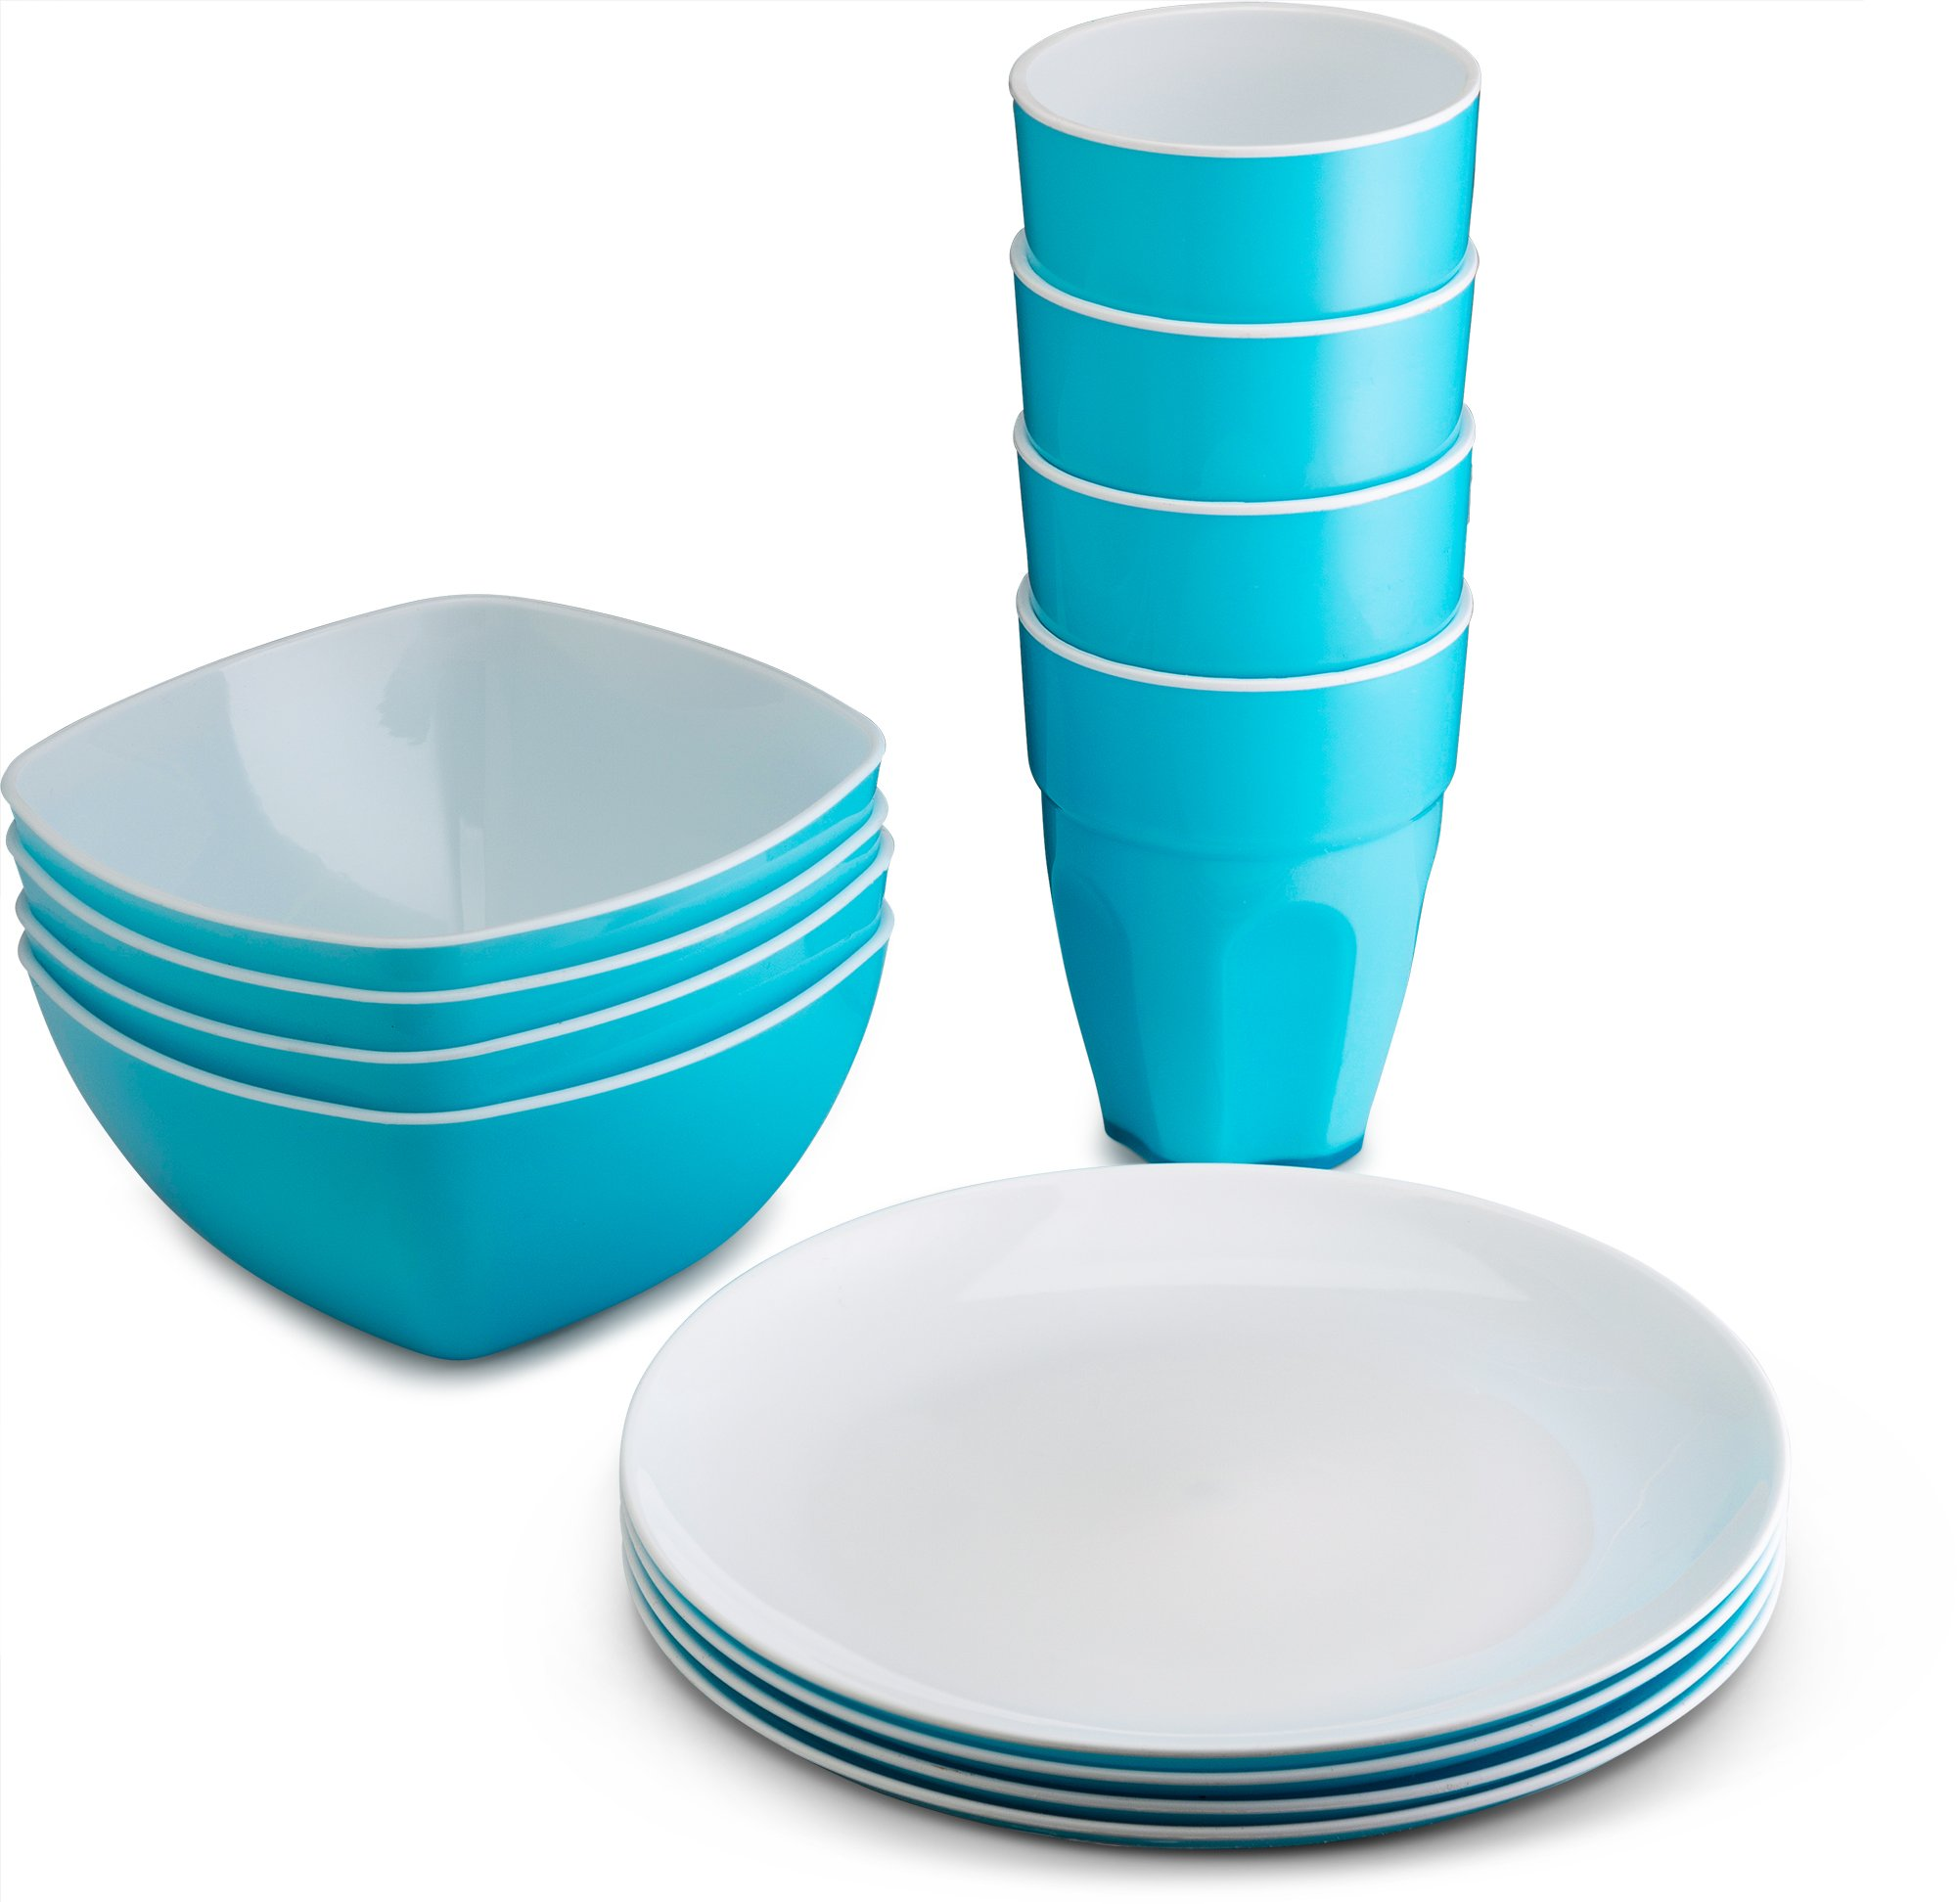 PLASTI HOME Reusable Plastic Dinnerware Set (12pcs) – Fancy Hard Plastic Plates, Bows & Cups In Blue Colors – Microwaveable & Dishwasher Safe Flatware & Tumblers For Daily Use